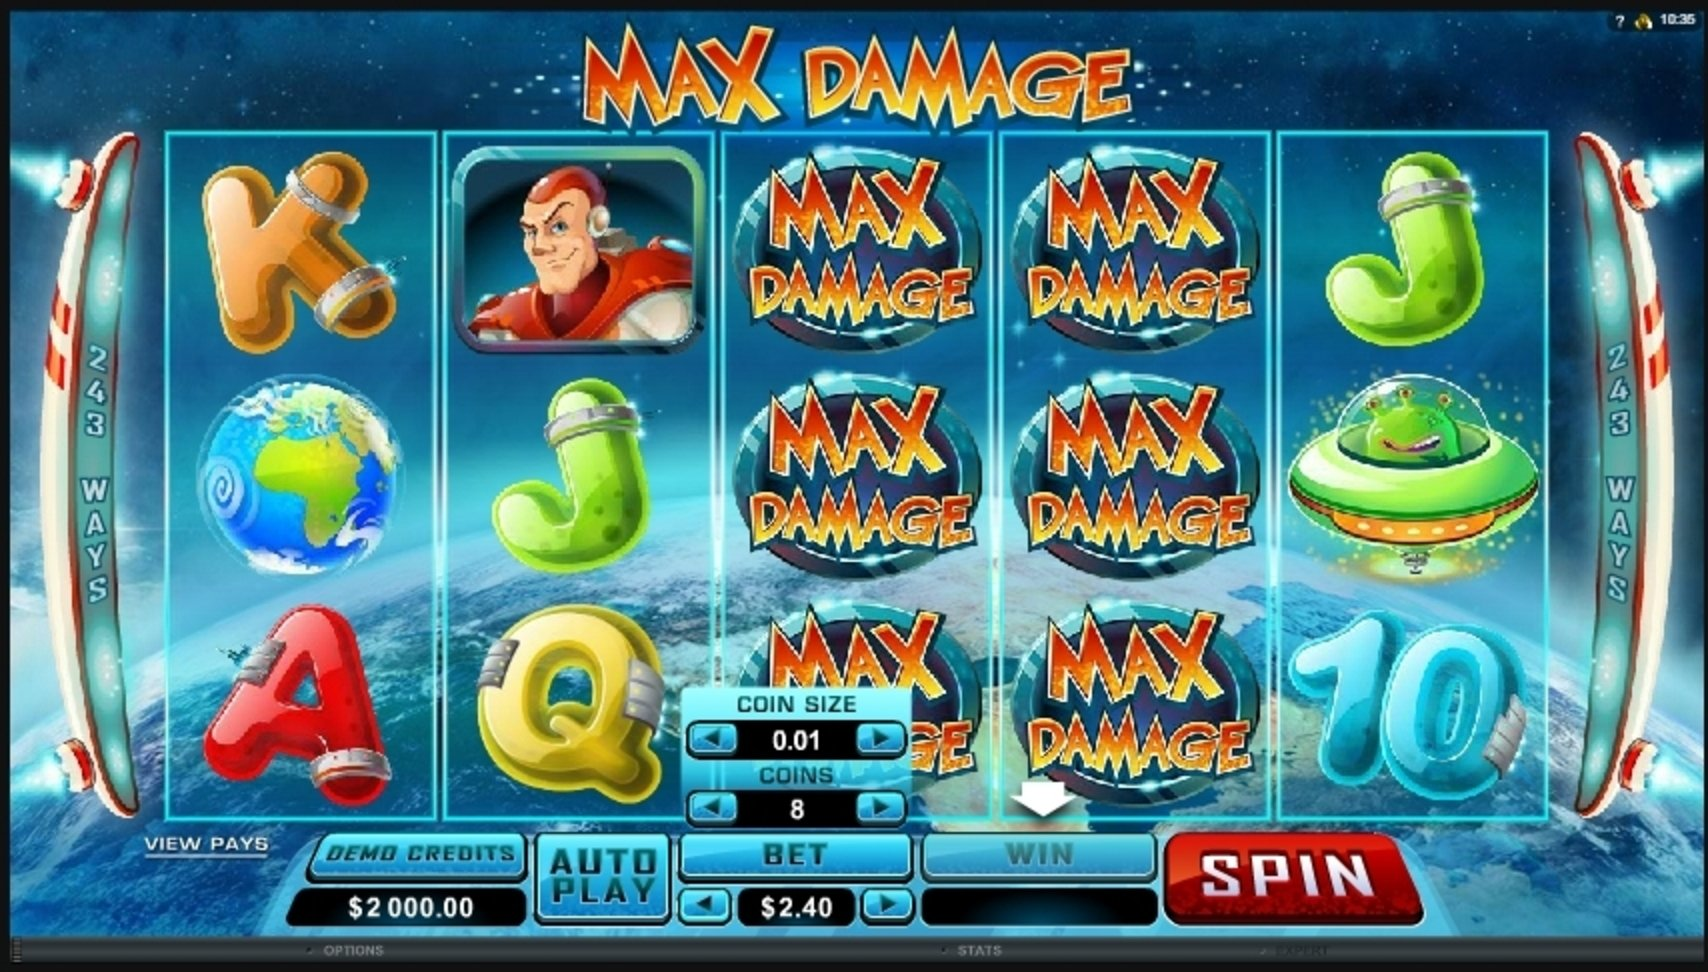 Reels in Max Damage Slot Game by Microgaming